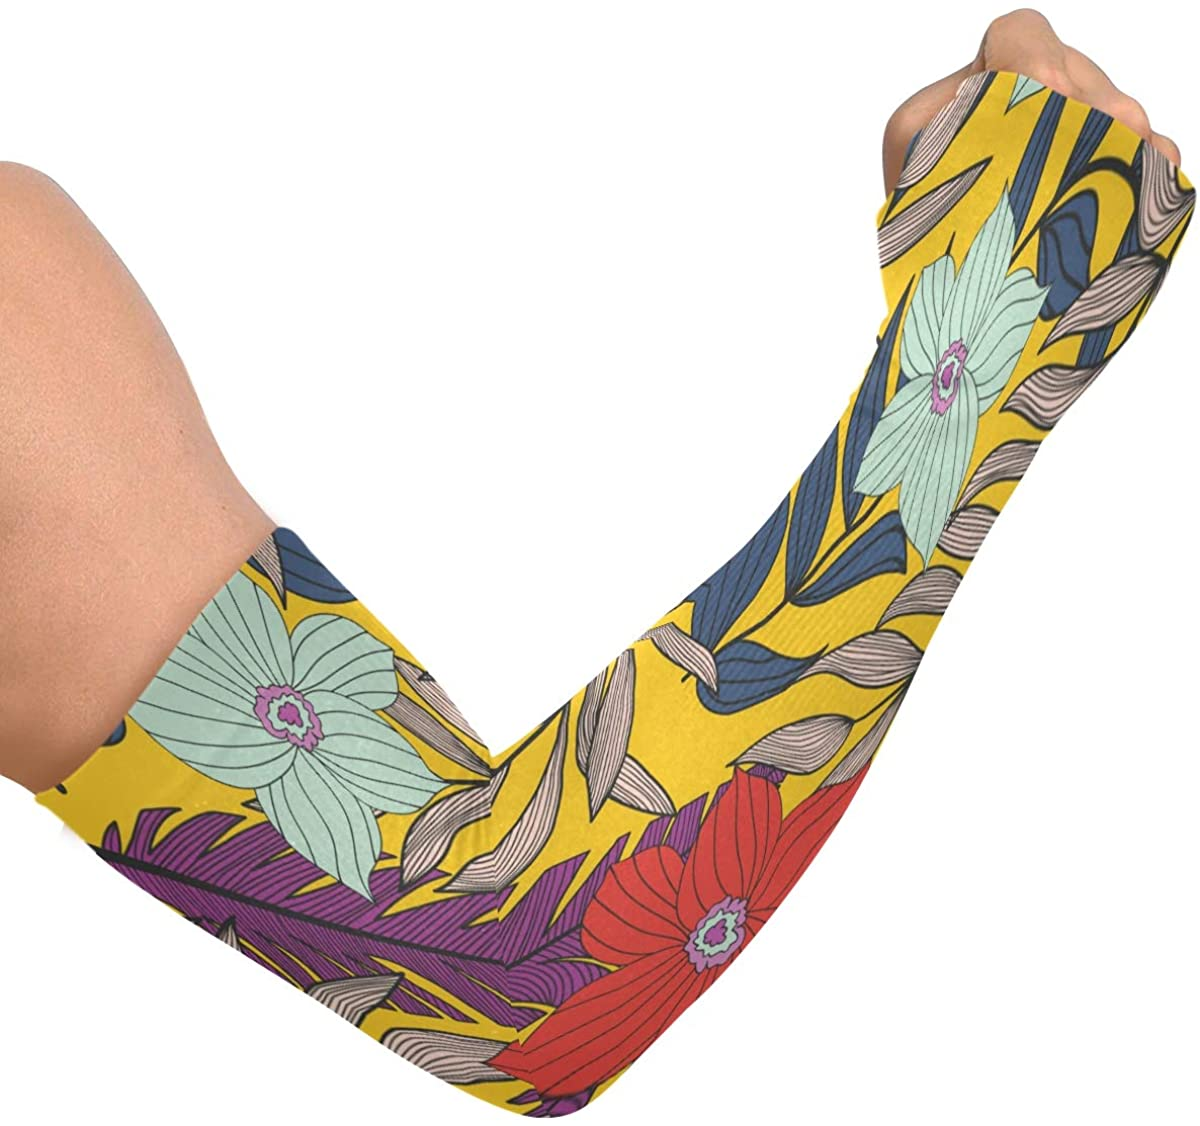 Cooling Arm Sleeves Anti-Slip Colorful Tropical Leaves Cooling Sleeves for Men Women Running Golf Cycling